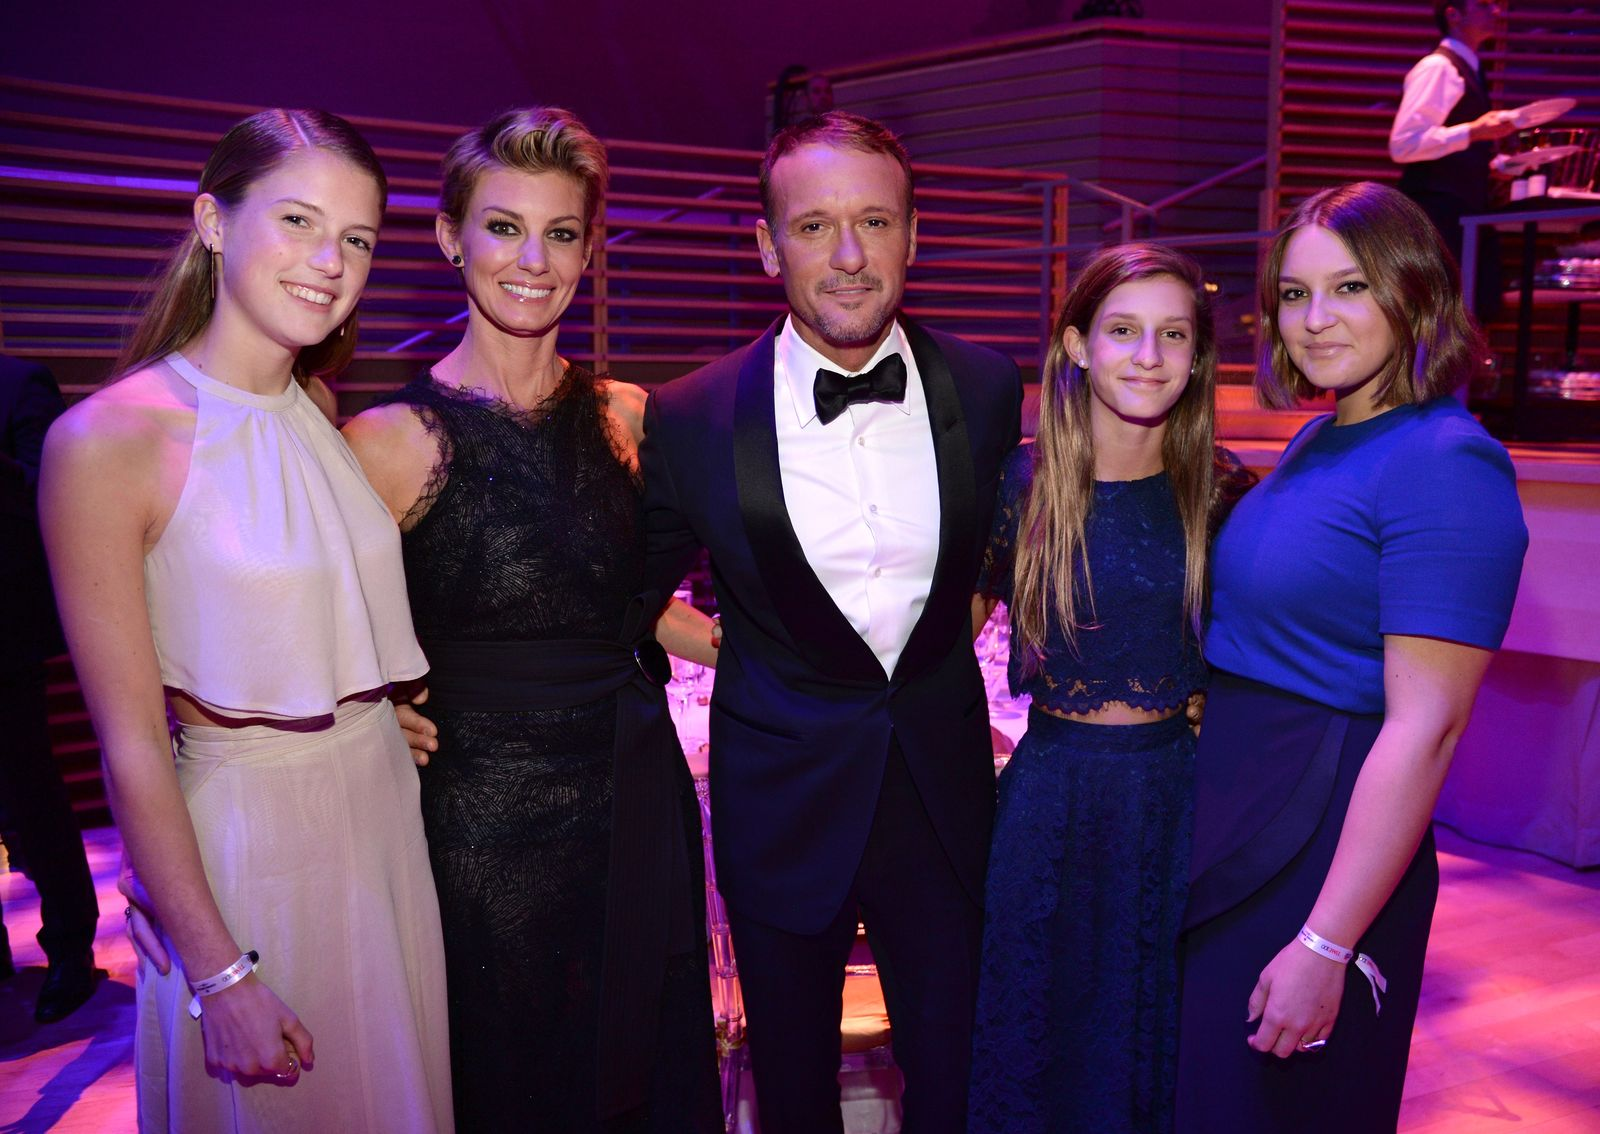 Gracie McGraw, Faith Hill, Tim McGraw, Audrey McGraw and Maggie McGraw attend TIME 100 Gala on April 21, 2015. | Photo: Getty Images